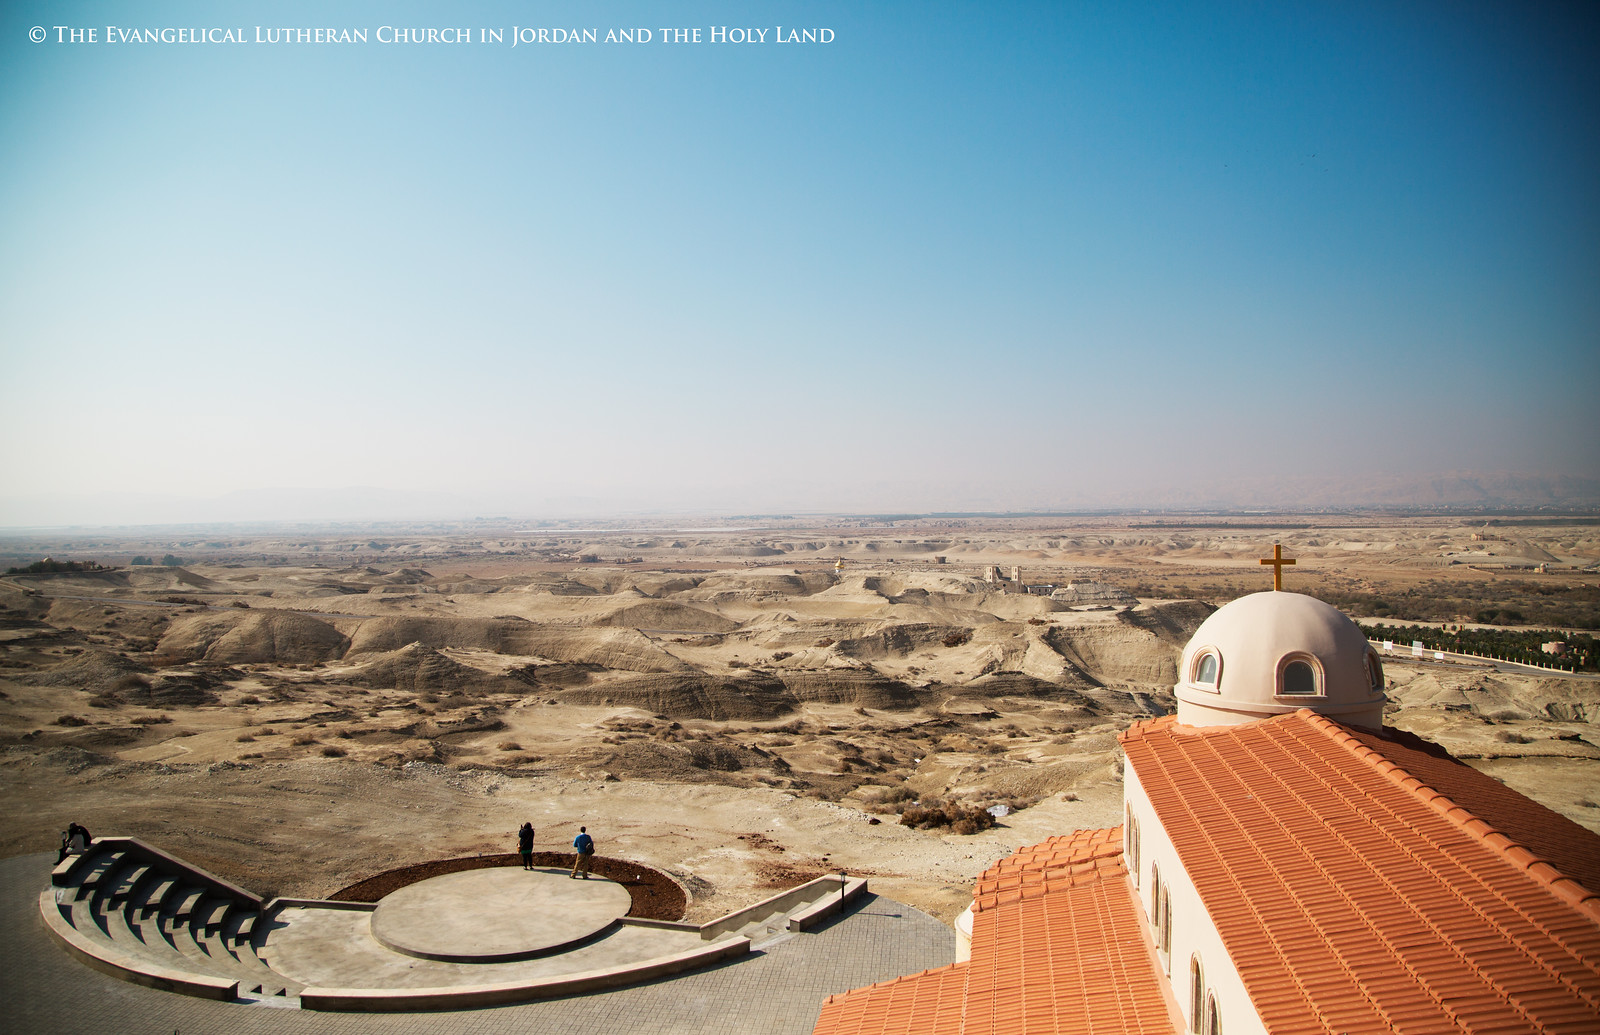 The view from the roof of the Evangelical Lutheran Church at Bethany Beyond the Jordan. Photo via The Evangelical Lutheran Church in Jordan and the Holy Land